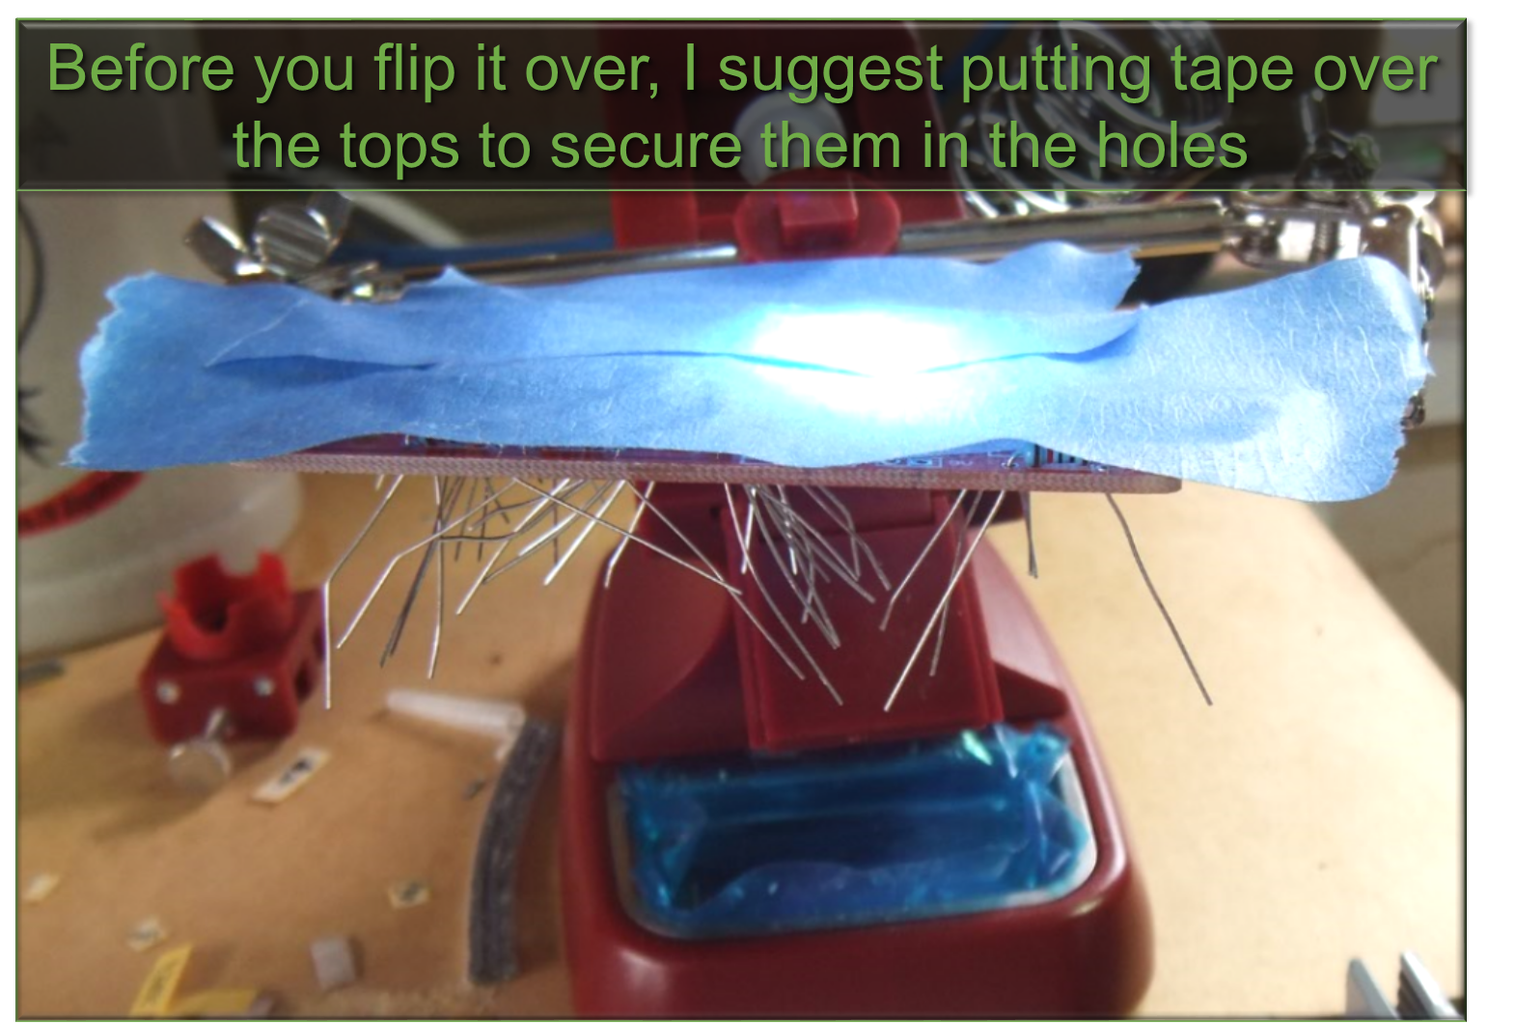 2.4 Before Flipping Over, Tape the Tops!